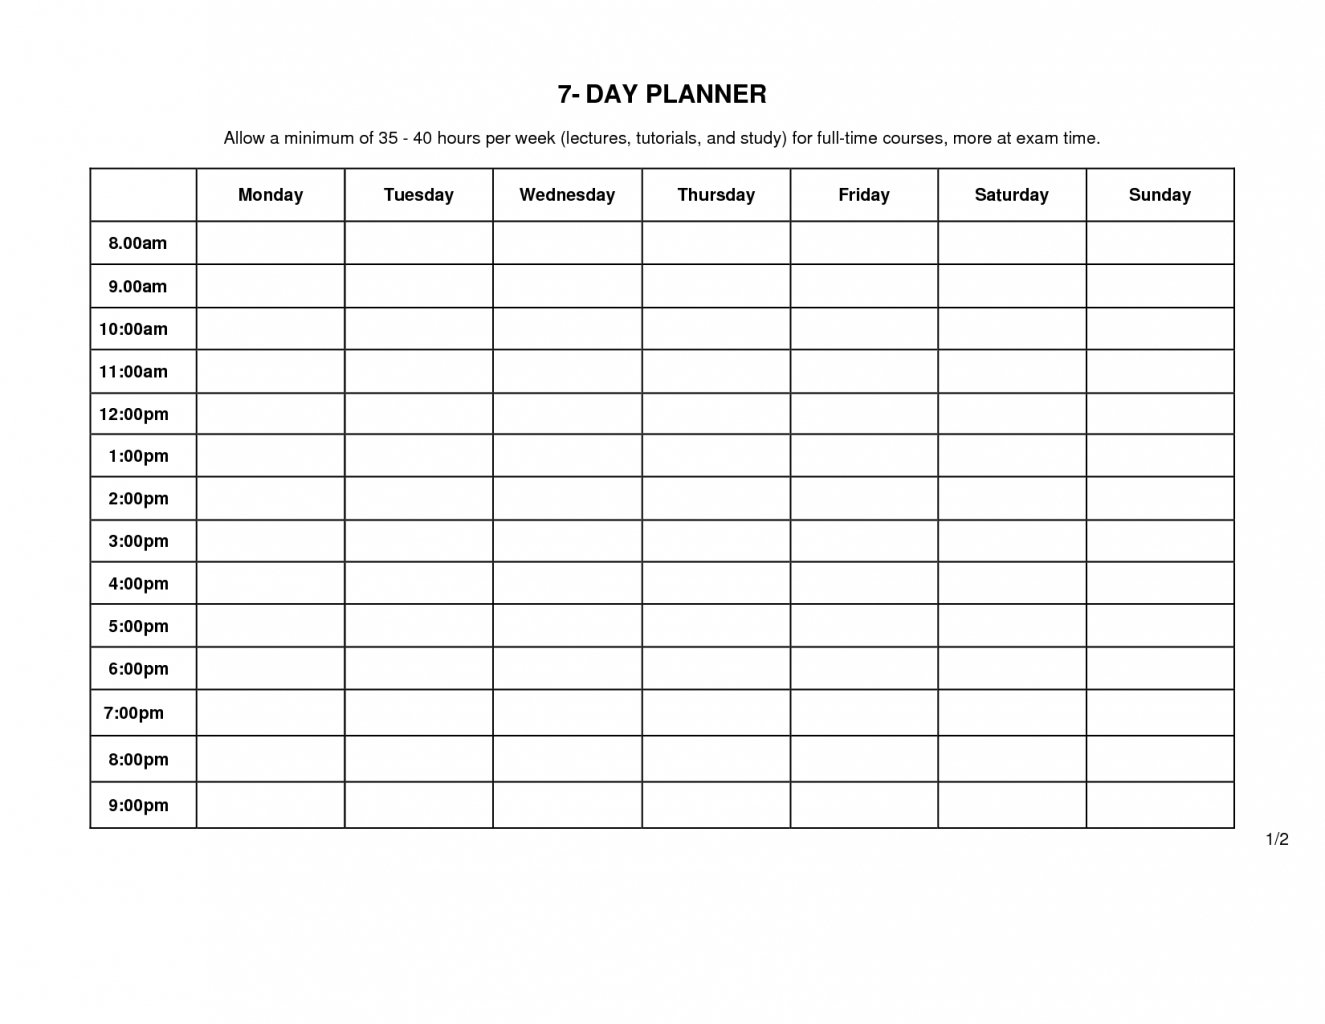 Monday To Friday Schedule Template | Example Calendar Monday Friday Schedule Printable